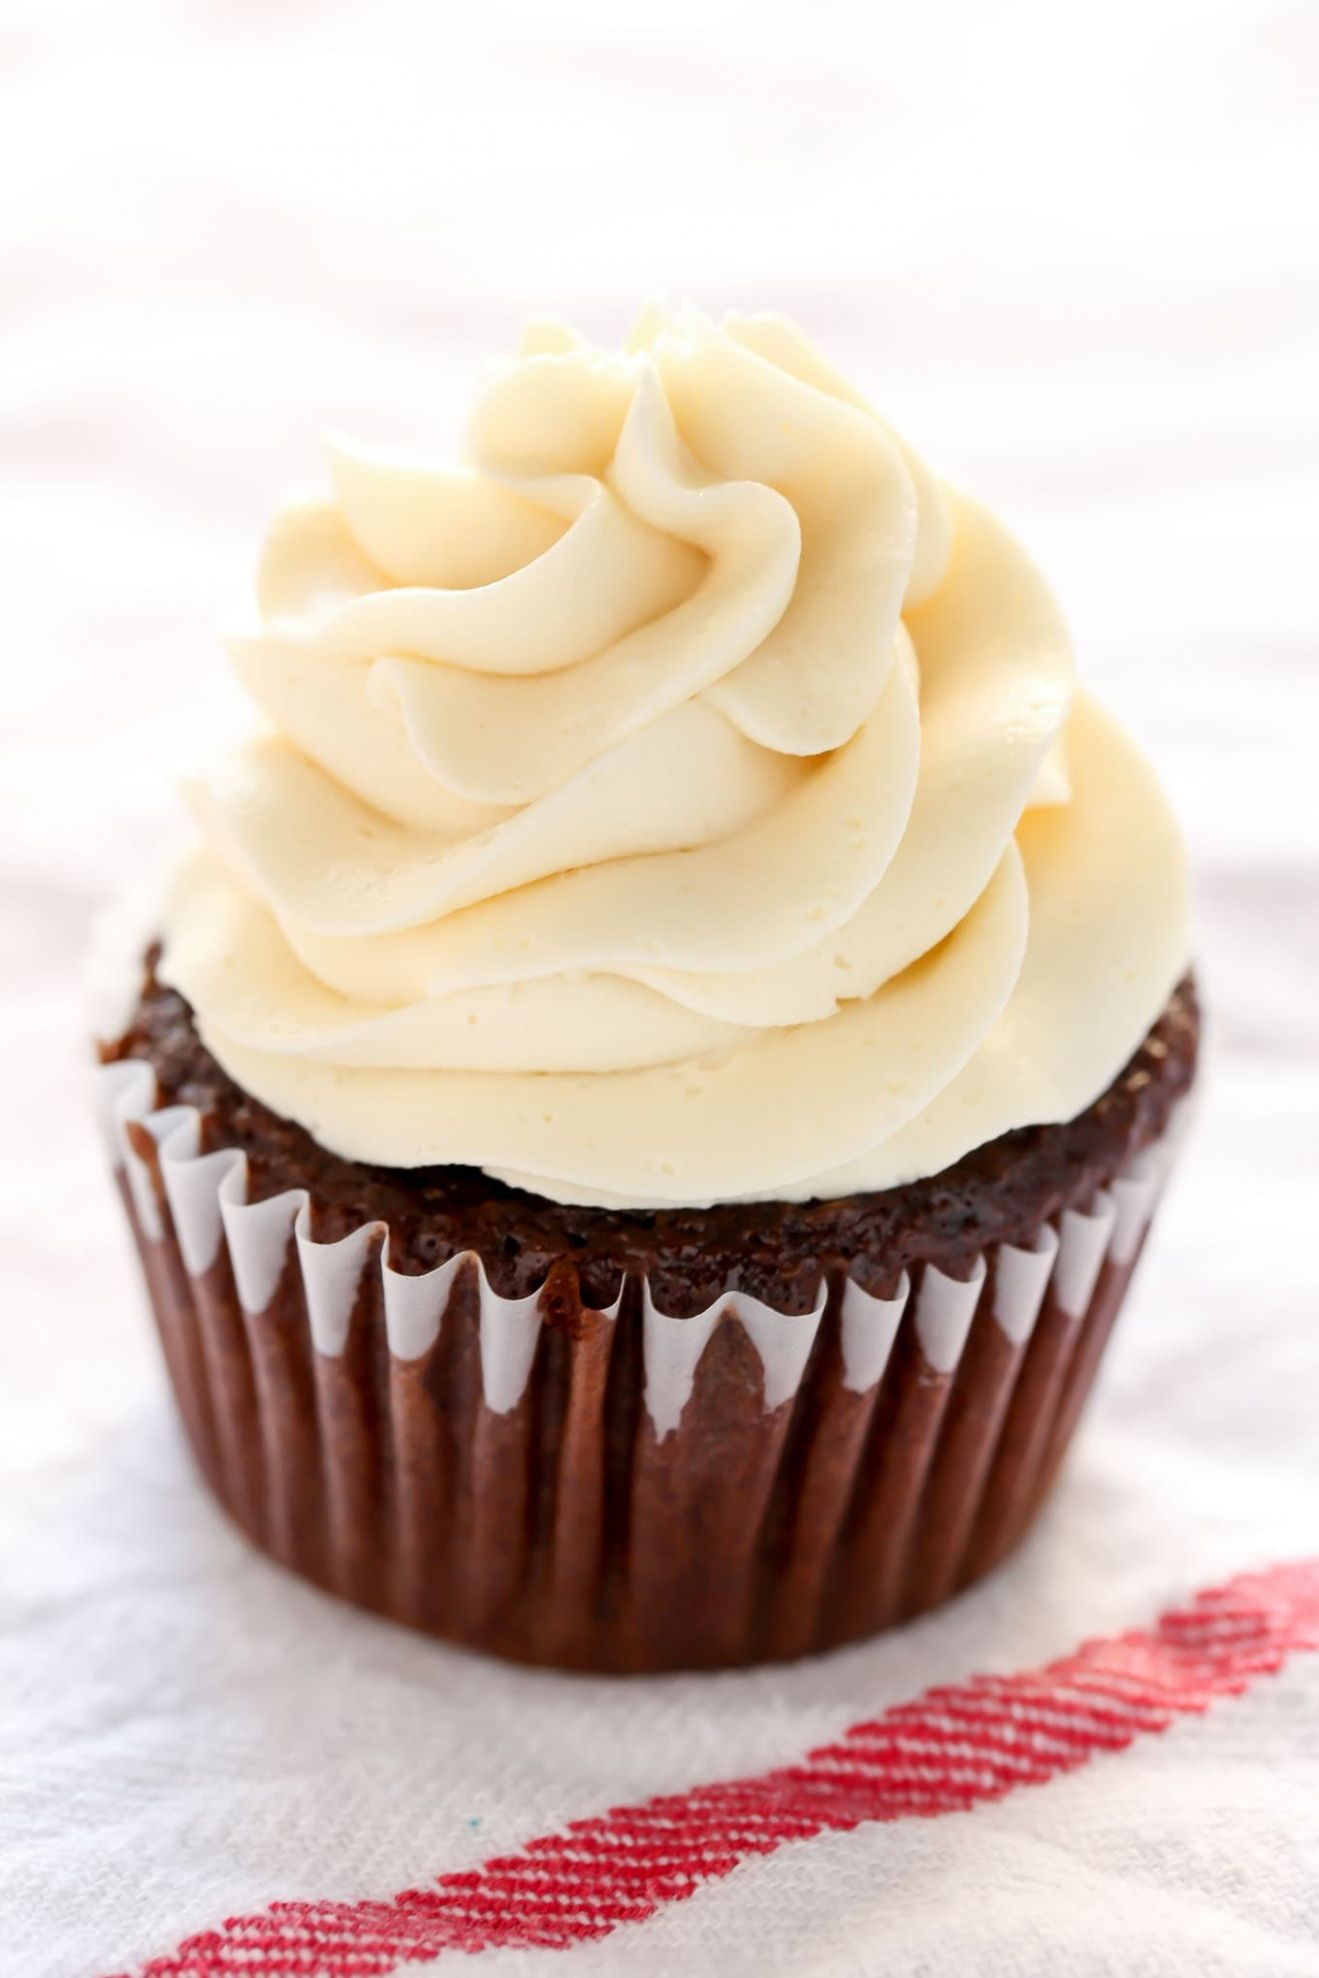 How To Make Buttercream Frosting - Recipes Cake Icing